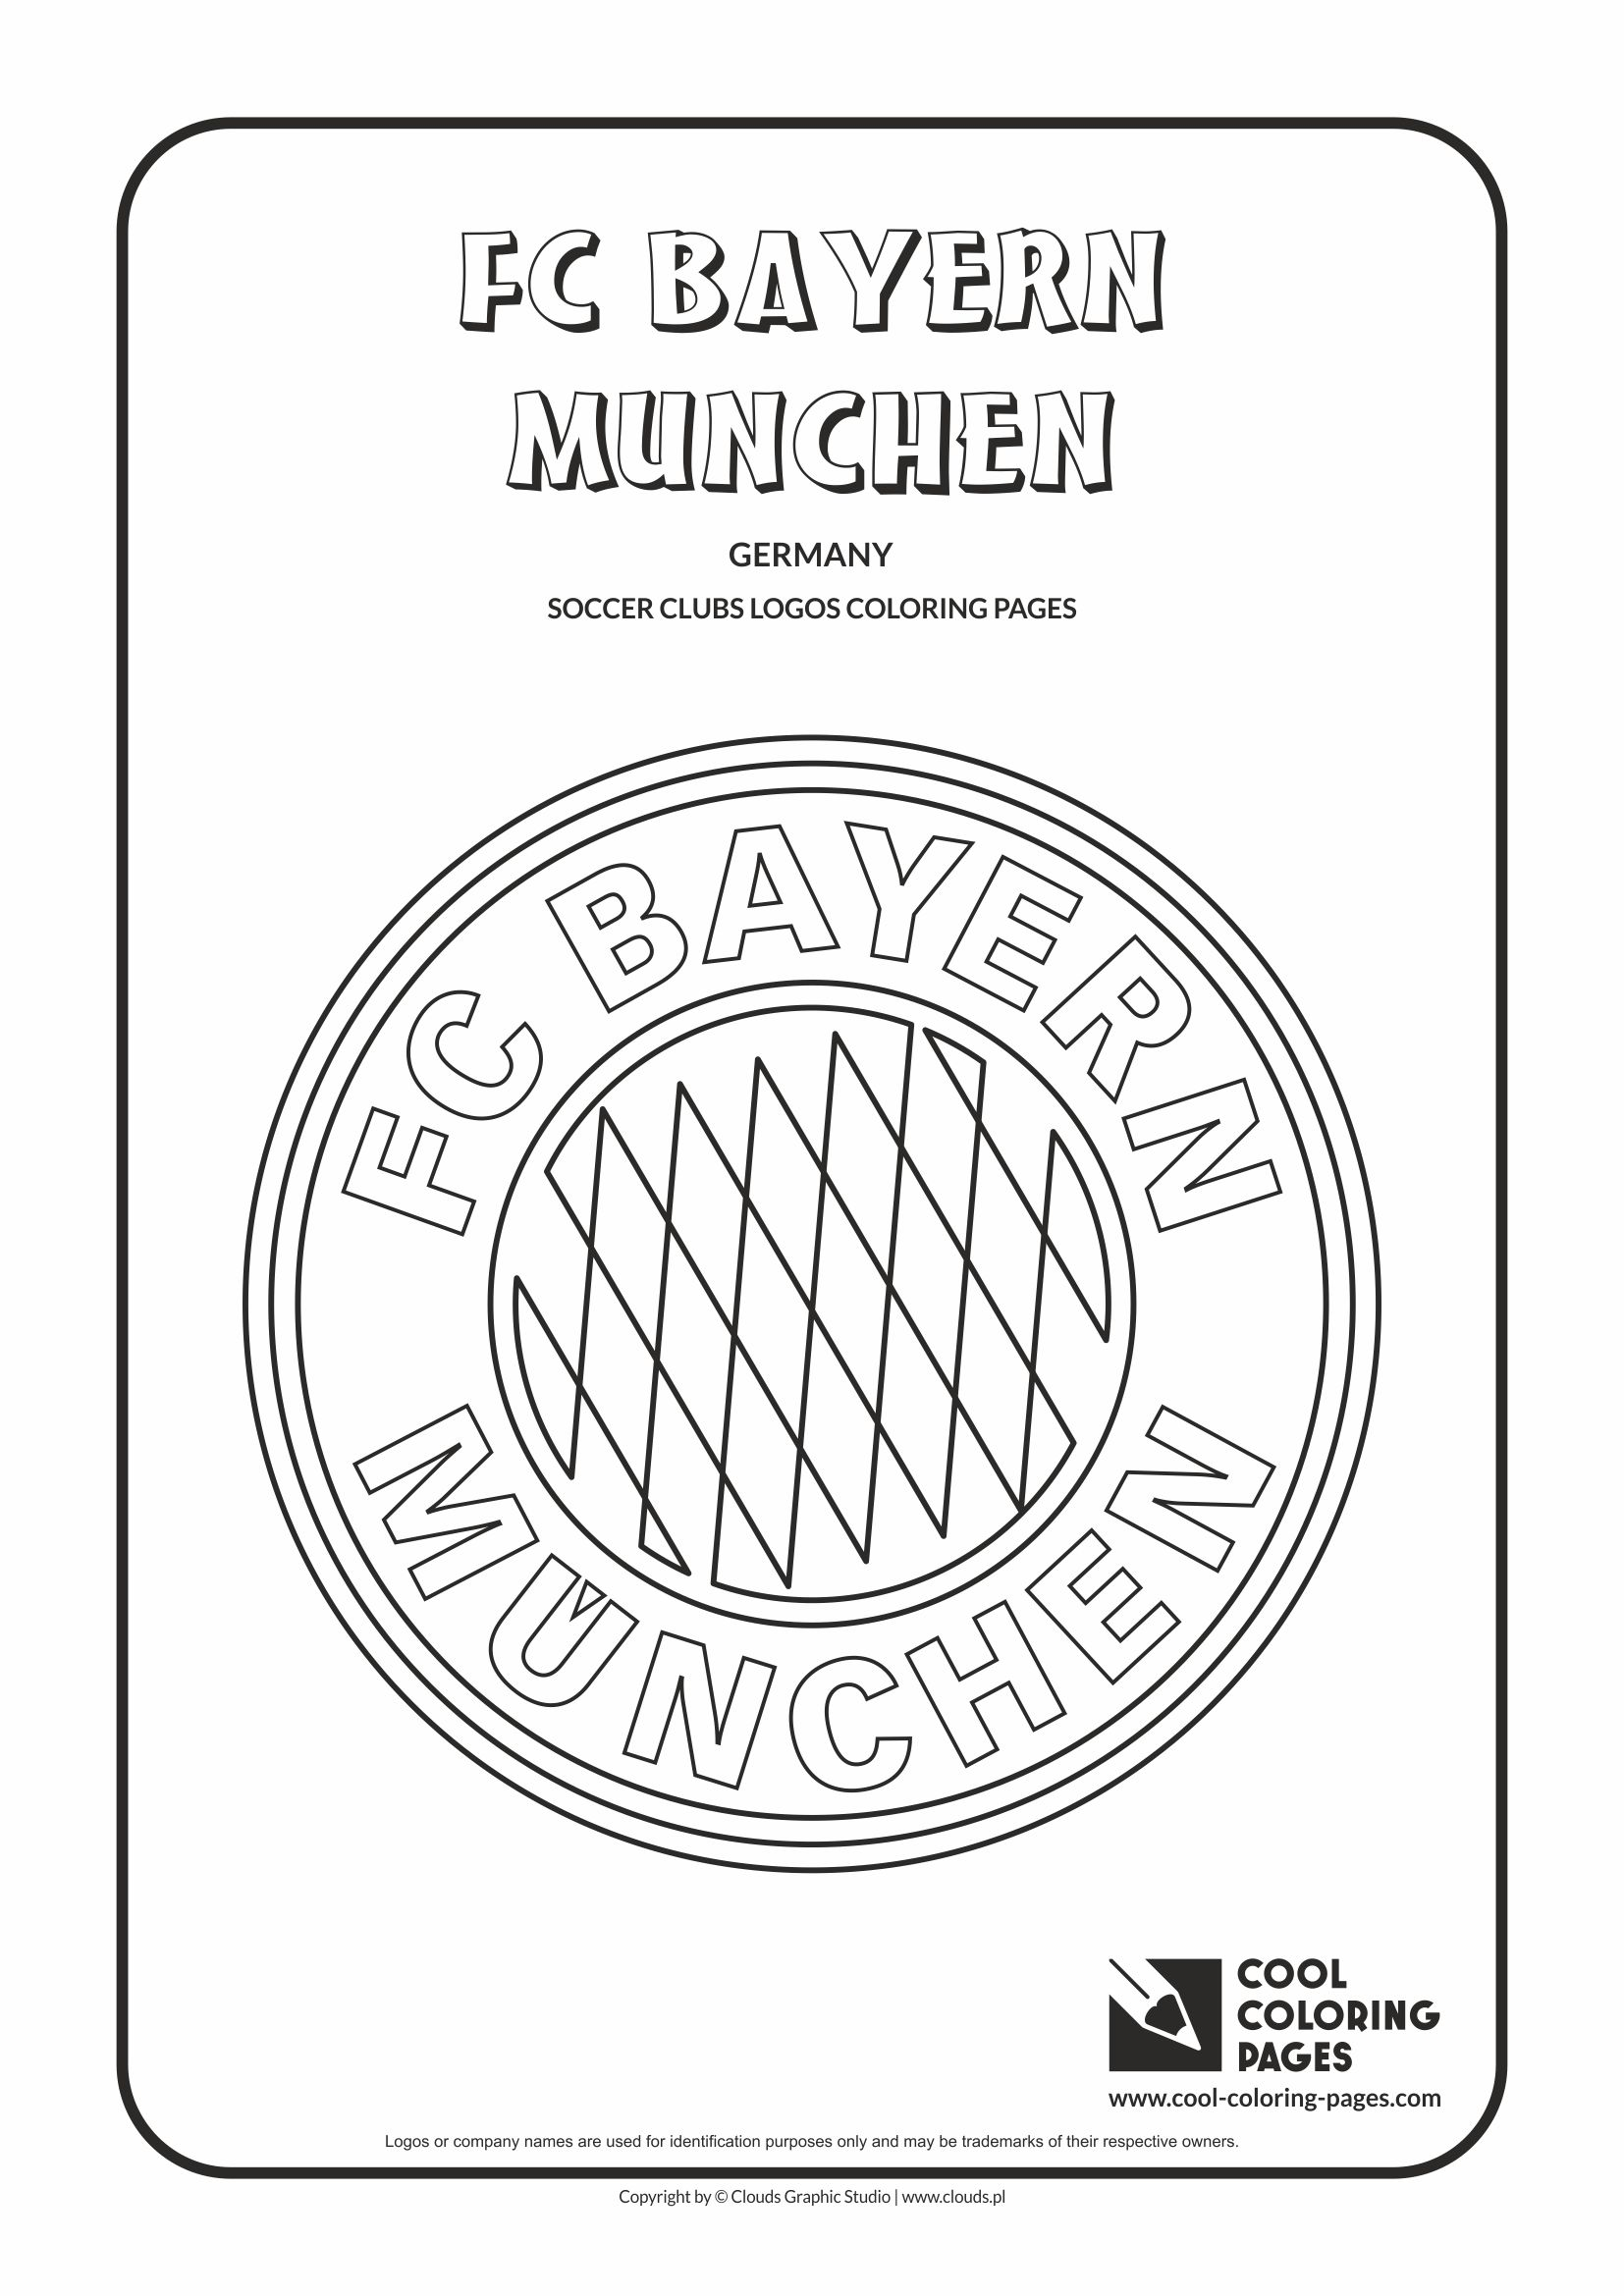 Cool Coloring Pages - Soccer Club Logos / FC Bayern Munchen logo / Coloring page with FC Bayern Munchen logo